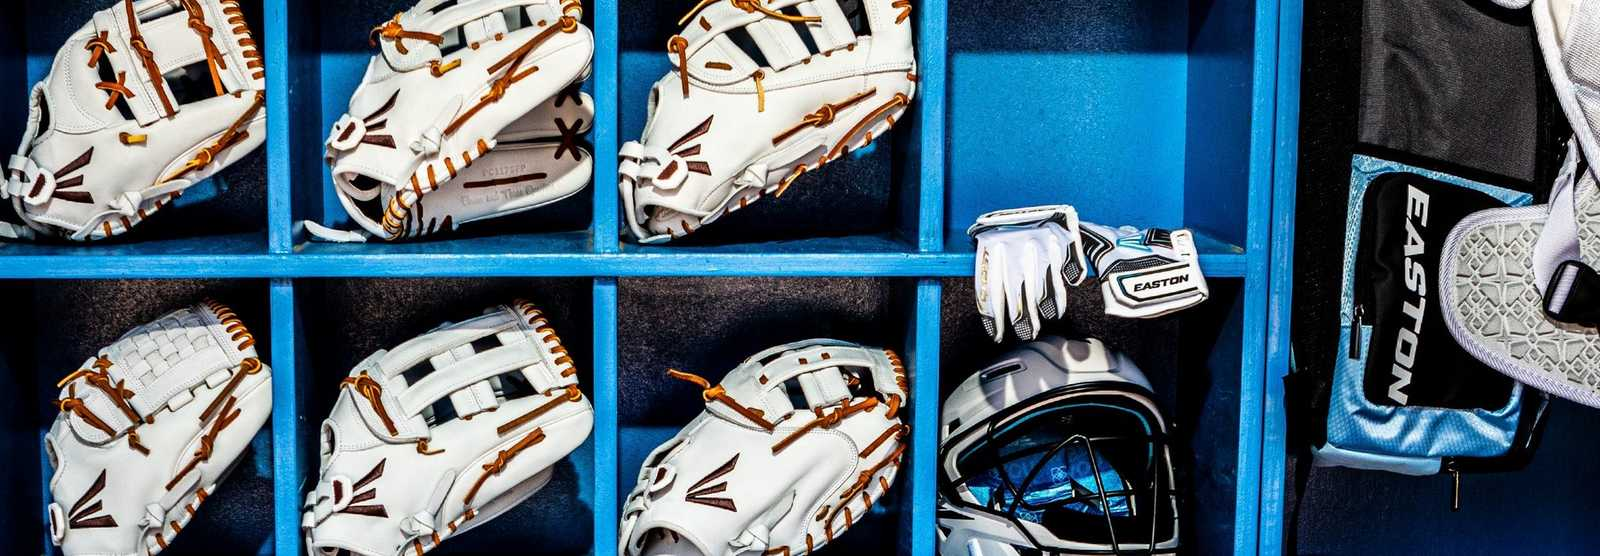 fastpitch-softball-gloves